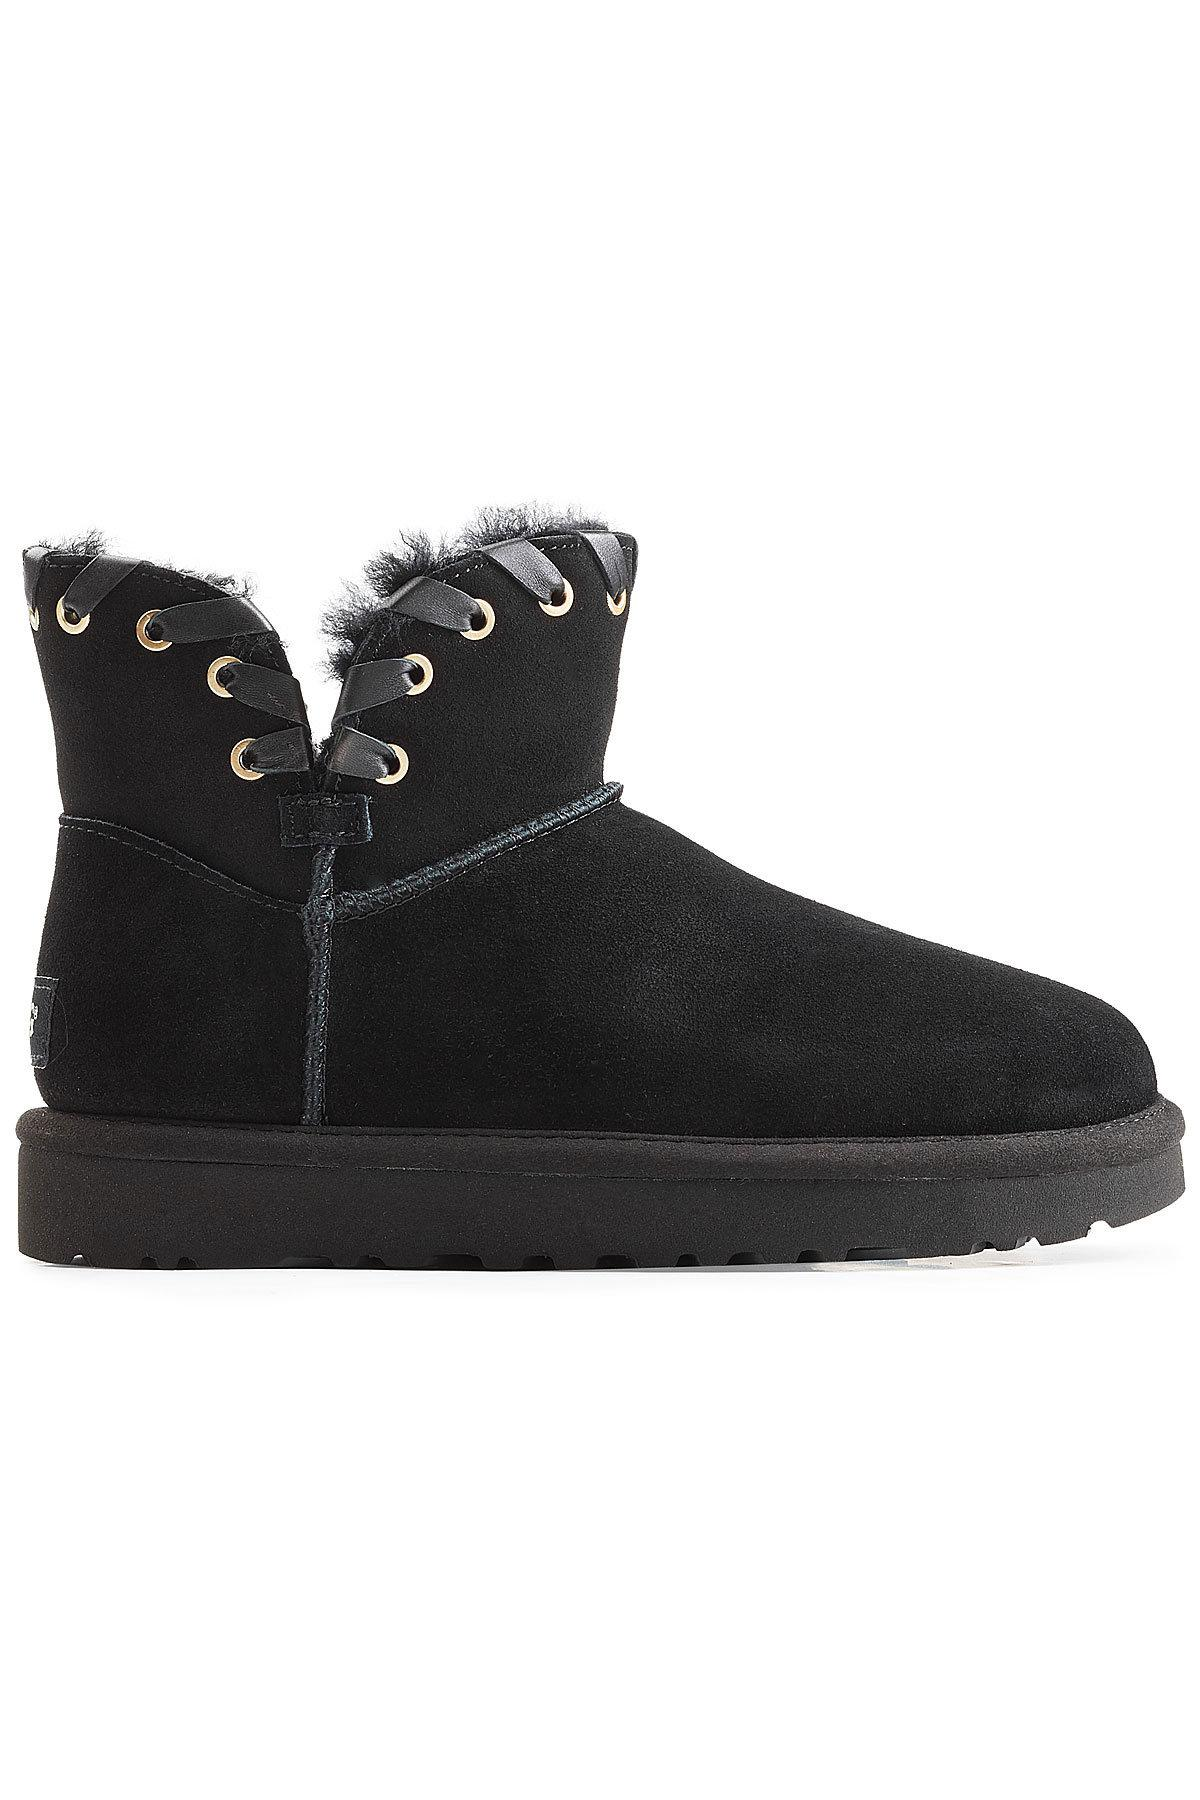 dcd8335c103 ... release date ugg black aidah mini suede boots with wool insole lyst.  view fullscreen 1474e